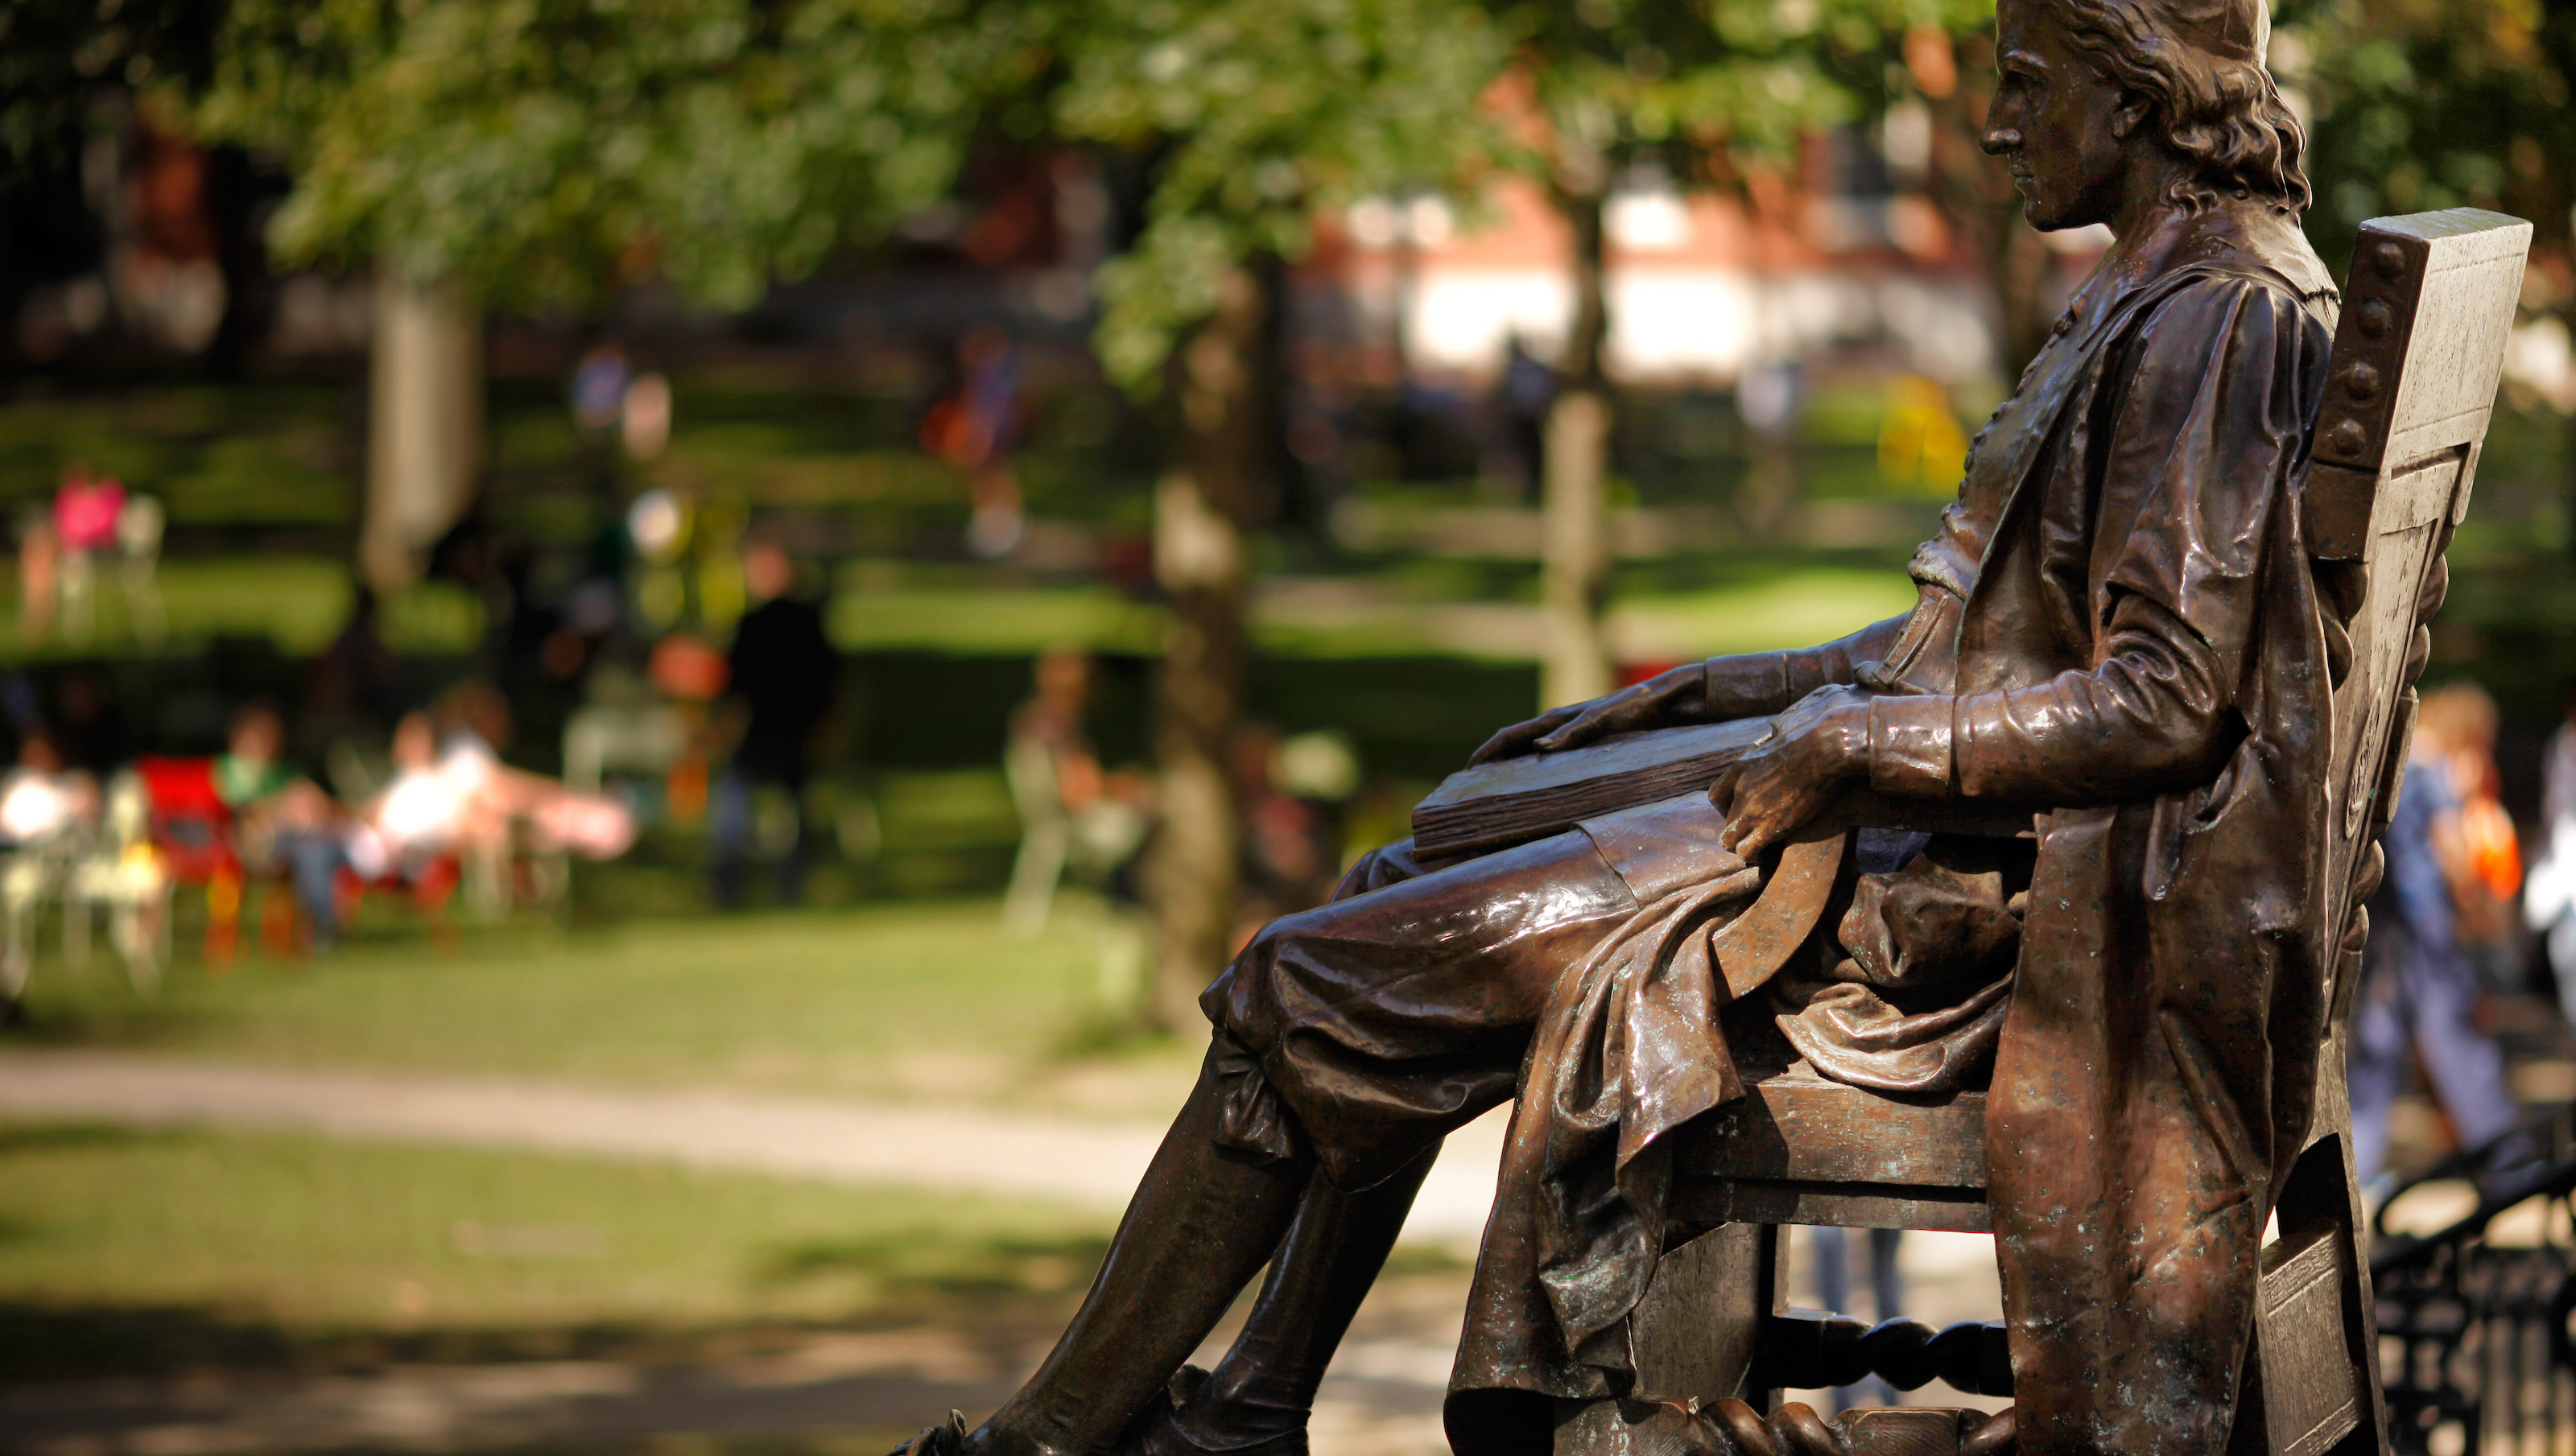 The statue of John Harvard sits in Harvard Yard at Harvard University in Cambridge, Massachusetts September 21, 2009.  John Harvard was the college's first benefactor who upon his death in 1638 left half his estate to the institution established in 1636.   REUTERS/Brian Snyder    (UNITED STATES) - RTR285OE